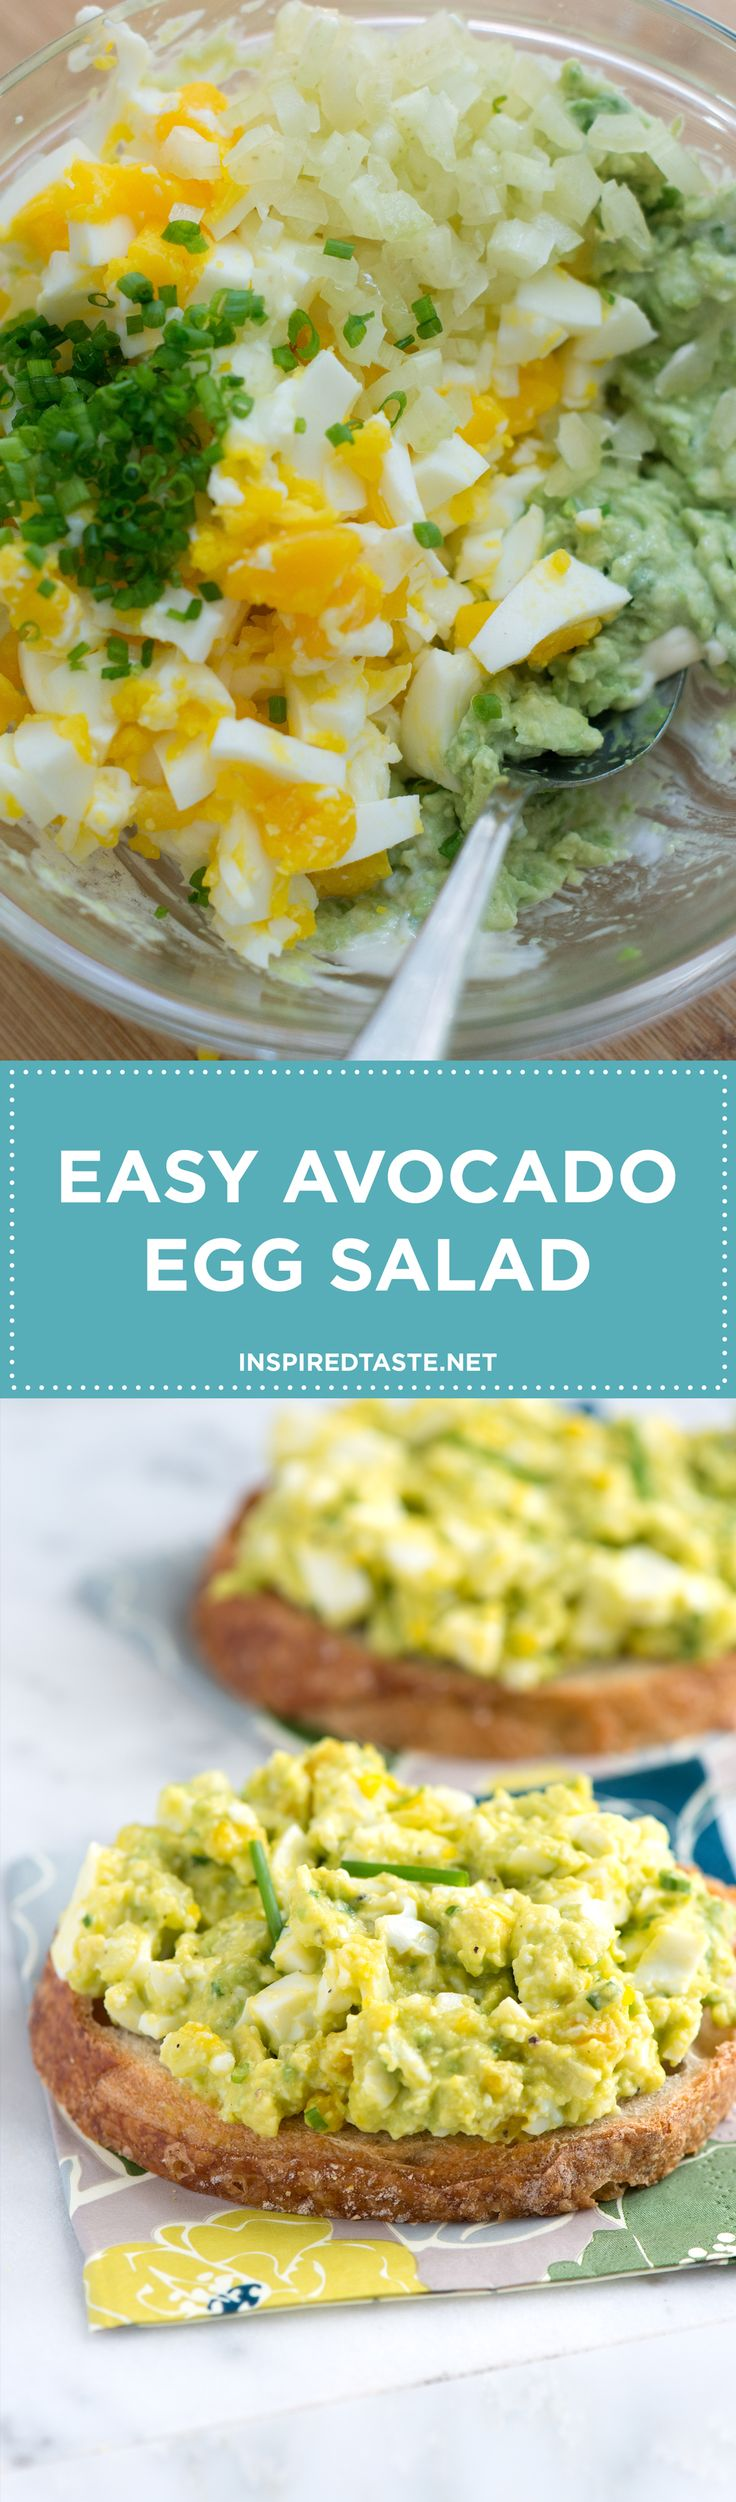 Our avocado egg salad recipe is very simple, all you need to do is mash avocado with a tiny bit of mayonnaise then stir in chopped eggs, celery, lemon juice and herbs. You could even swap nonfat or low-fat yogurt for the mayonnaise (sour cream works, too)